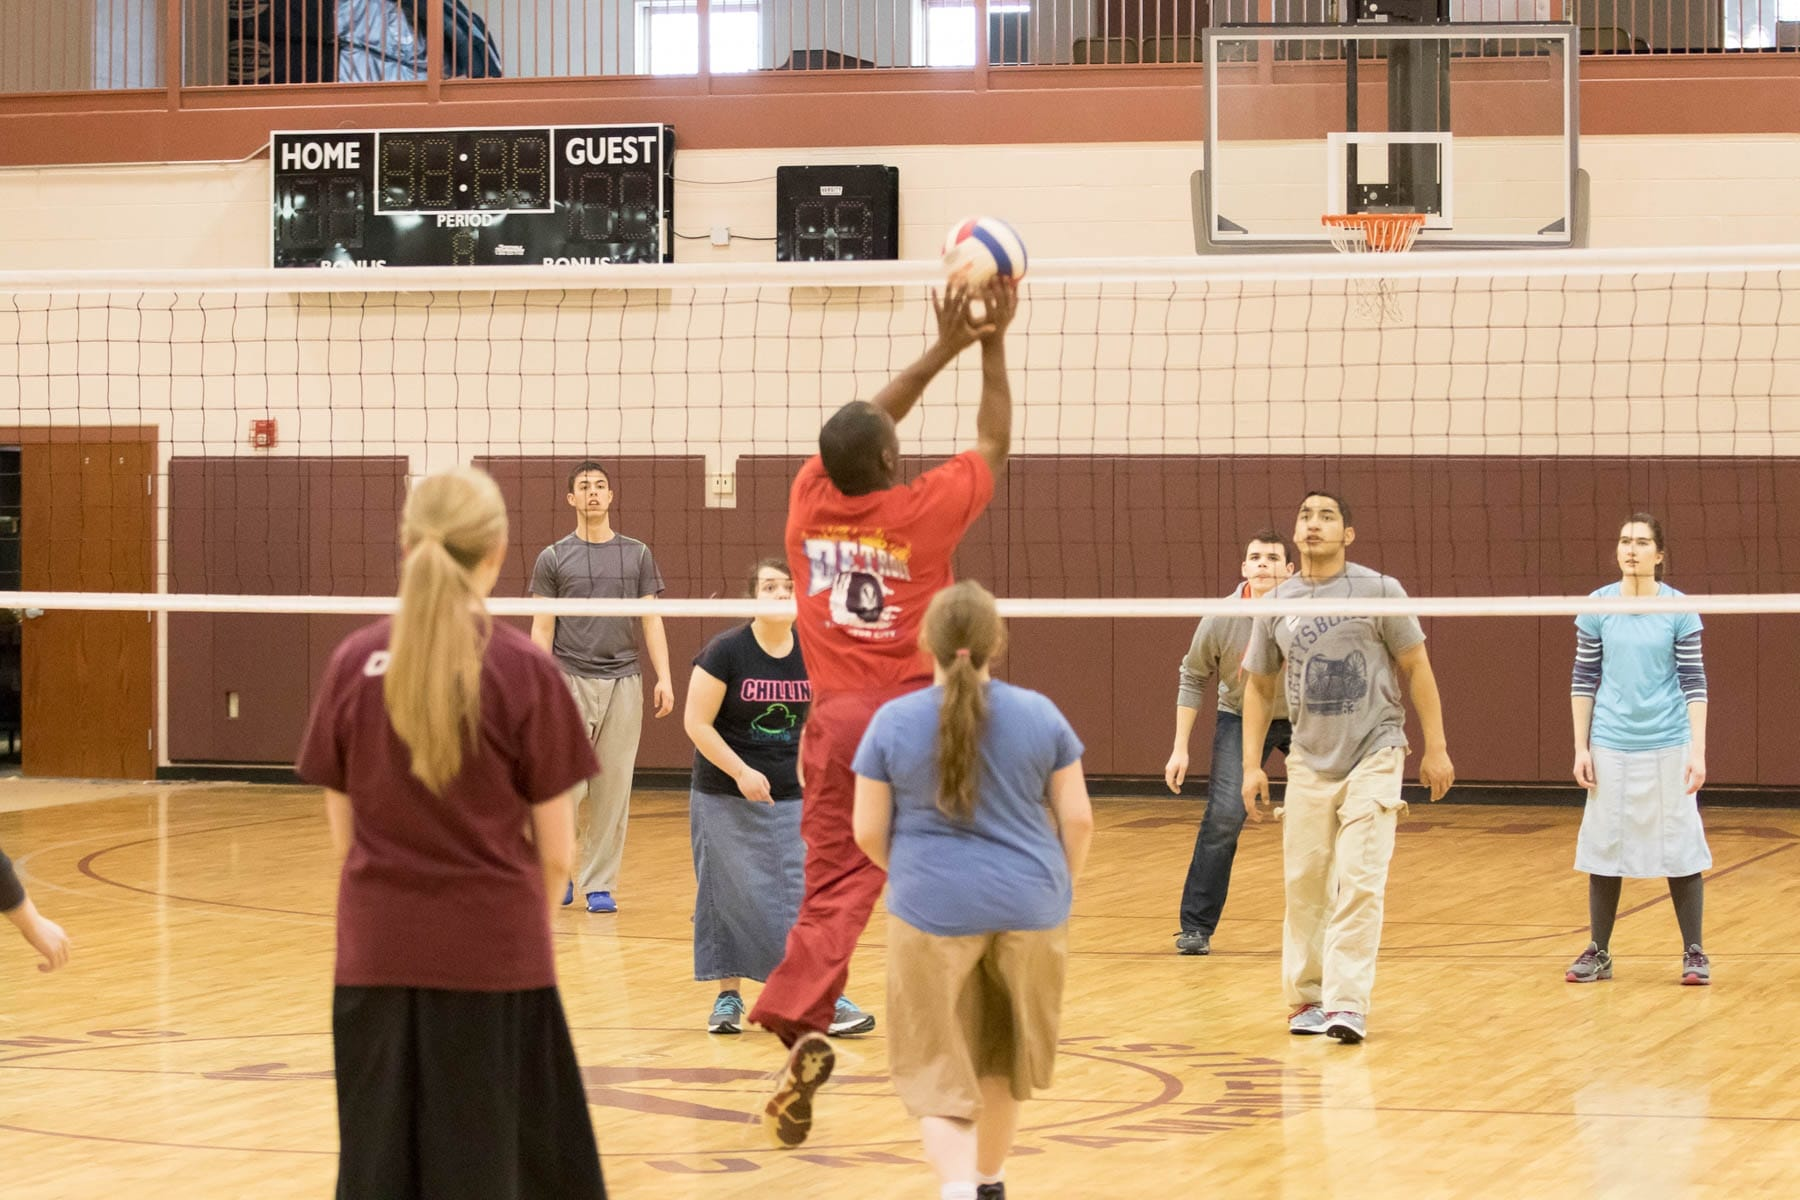 Fairhaven Baptist College Volleyball Marathon 2016 (3 of 20)